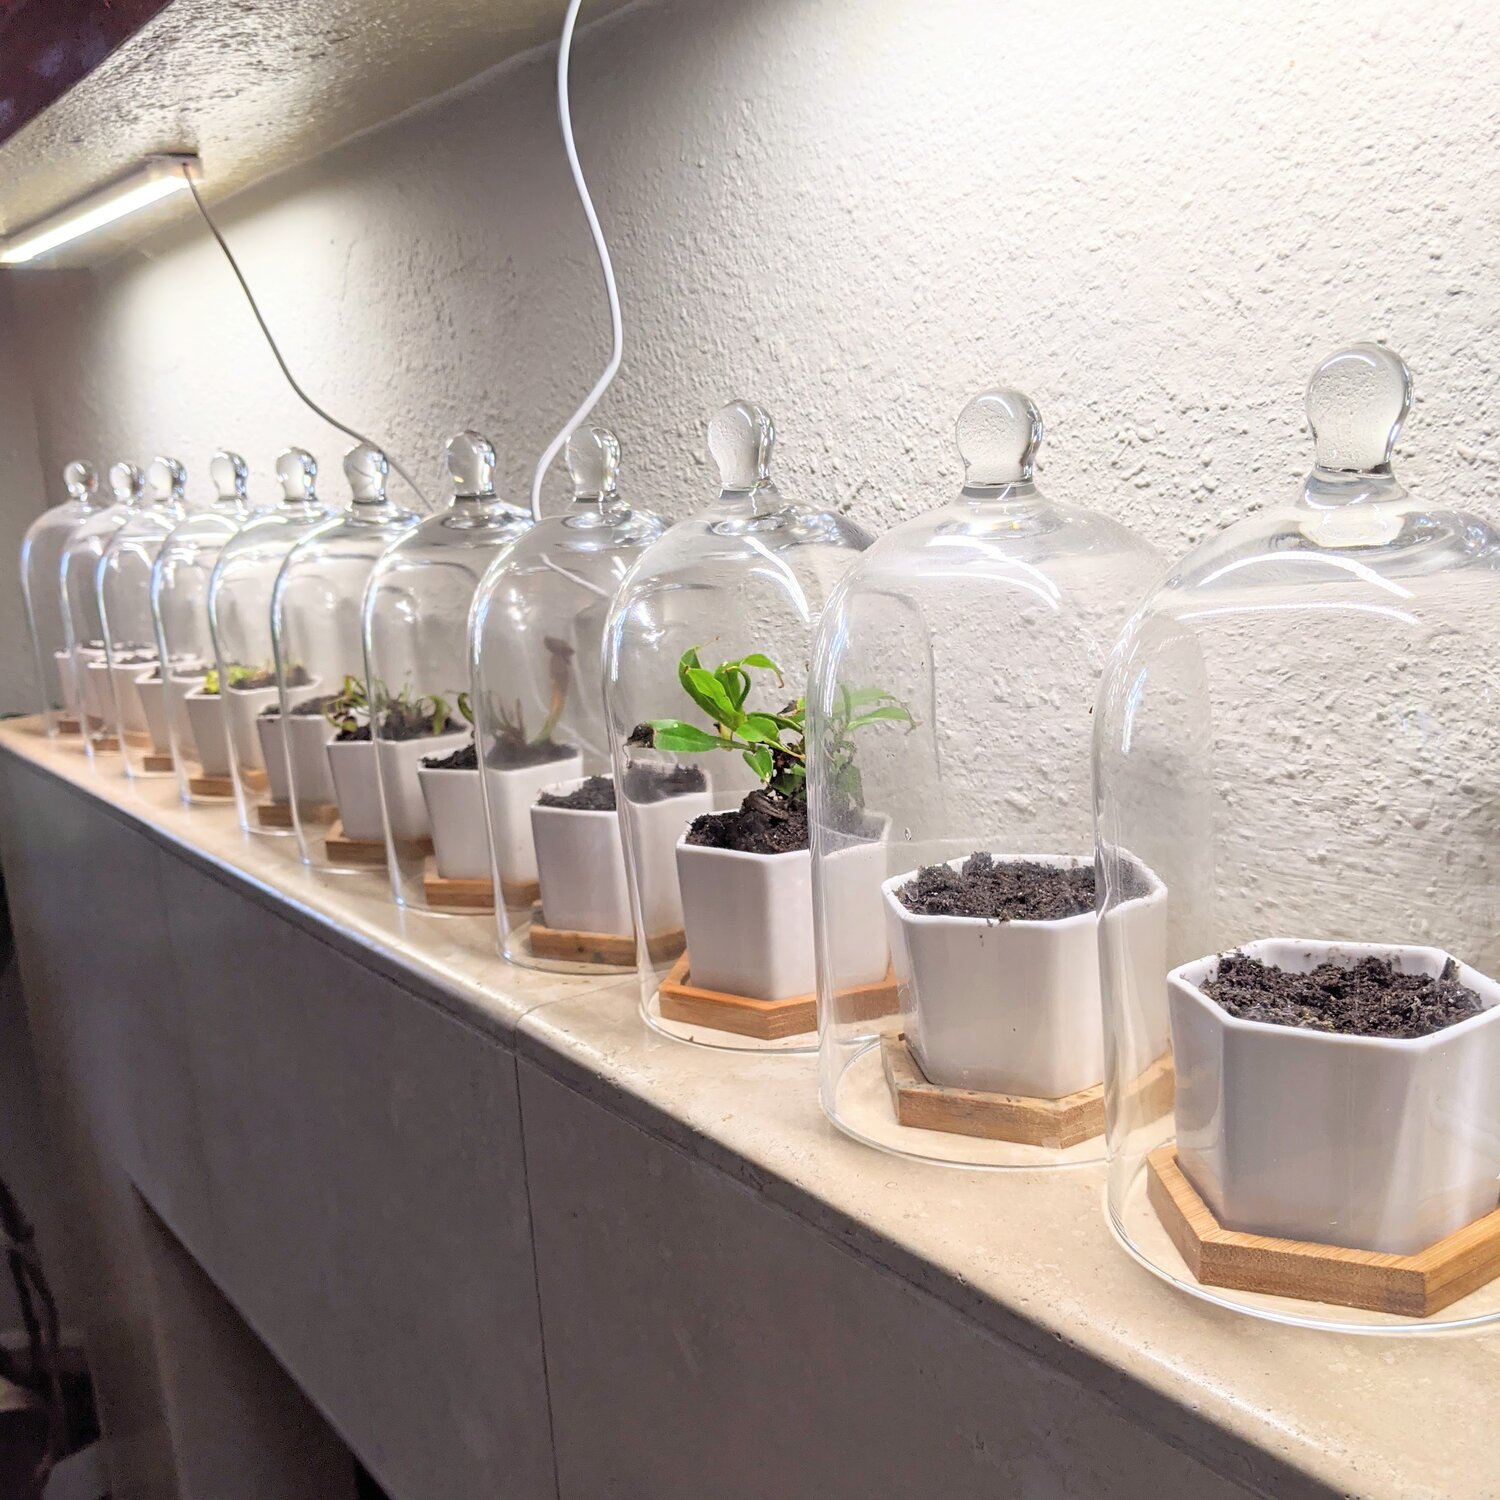 If you don't have a lot of space so you can't just hide away your seed projects, you can use glass domes to basically make your seed starting projects into home decor! Some of the other methods can be kind of an eye-sore, so this is a definite perk to glass domes!